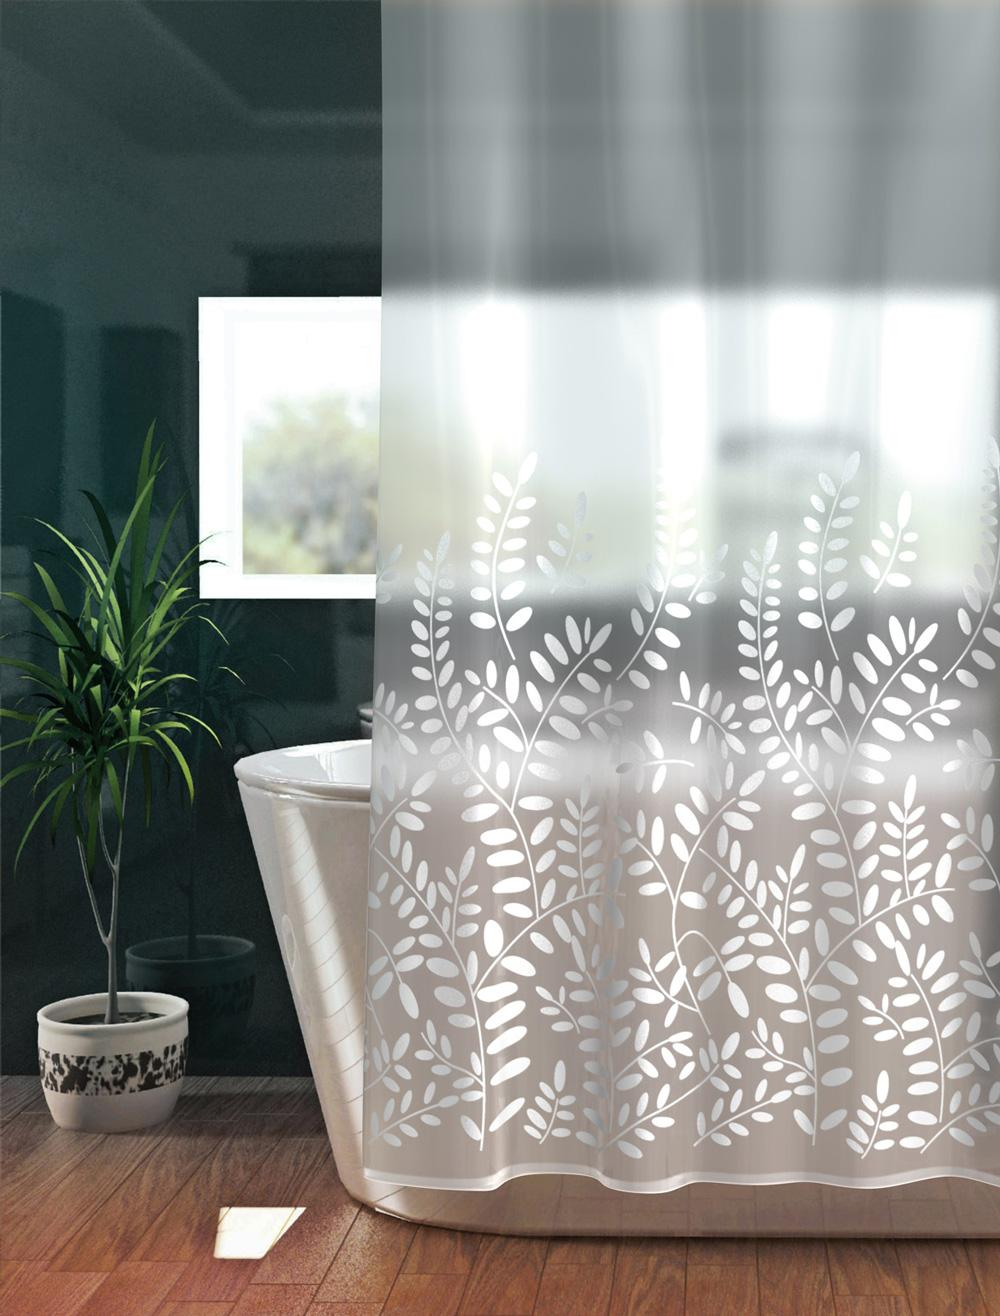 Val Verde Shower Curtain - Was $13.65